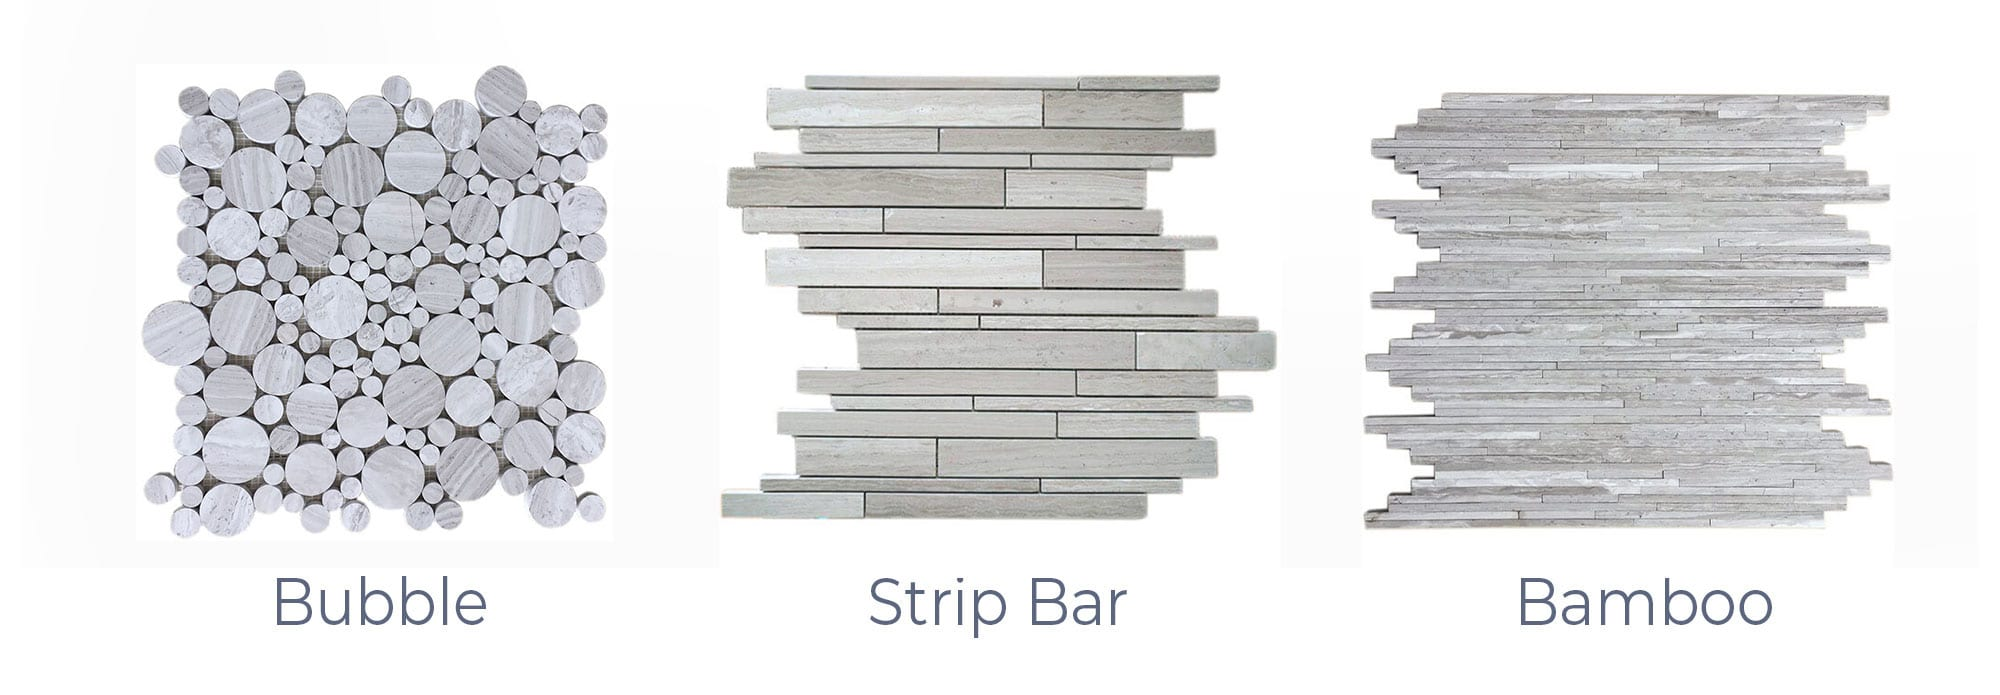 Stoneline-Group-White-Wood-Marble-Collection-Marble-Mosaic-varieties-Bubble-Strip-Bar-Bamboo-Marble-Pictures